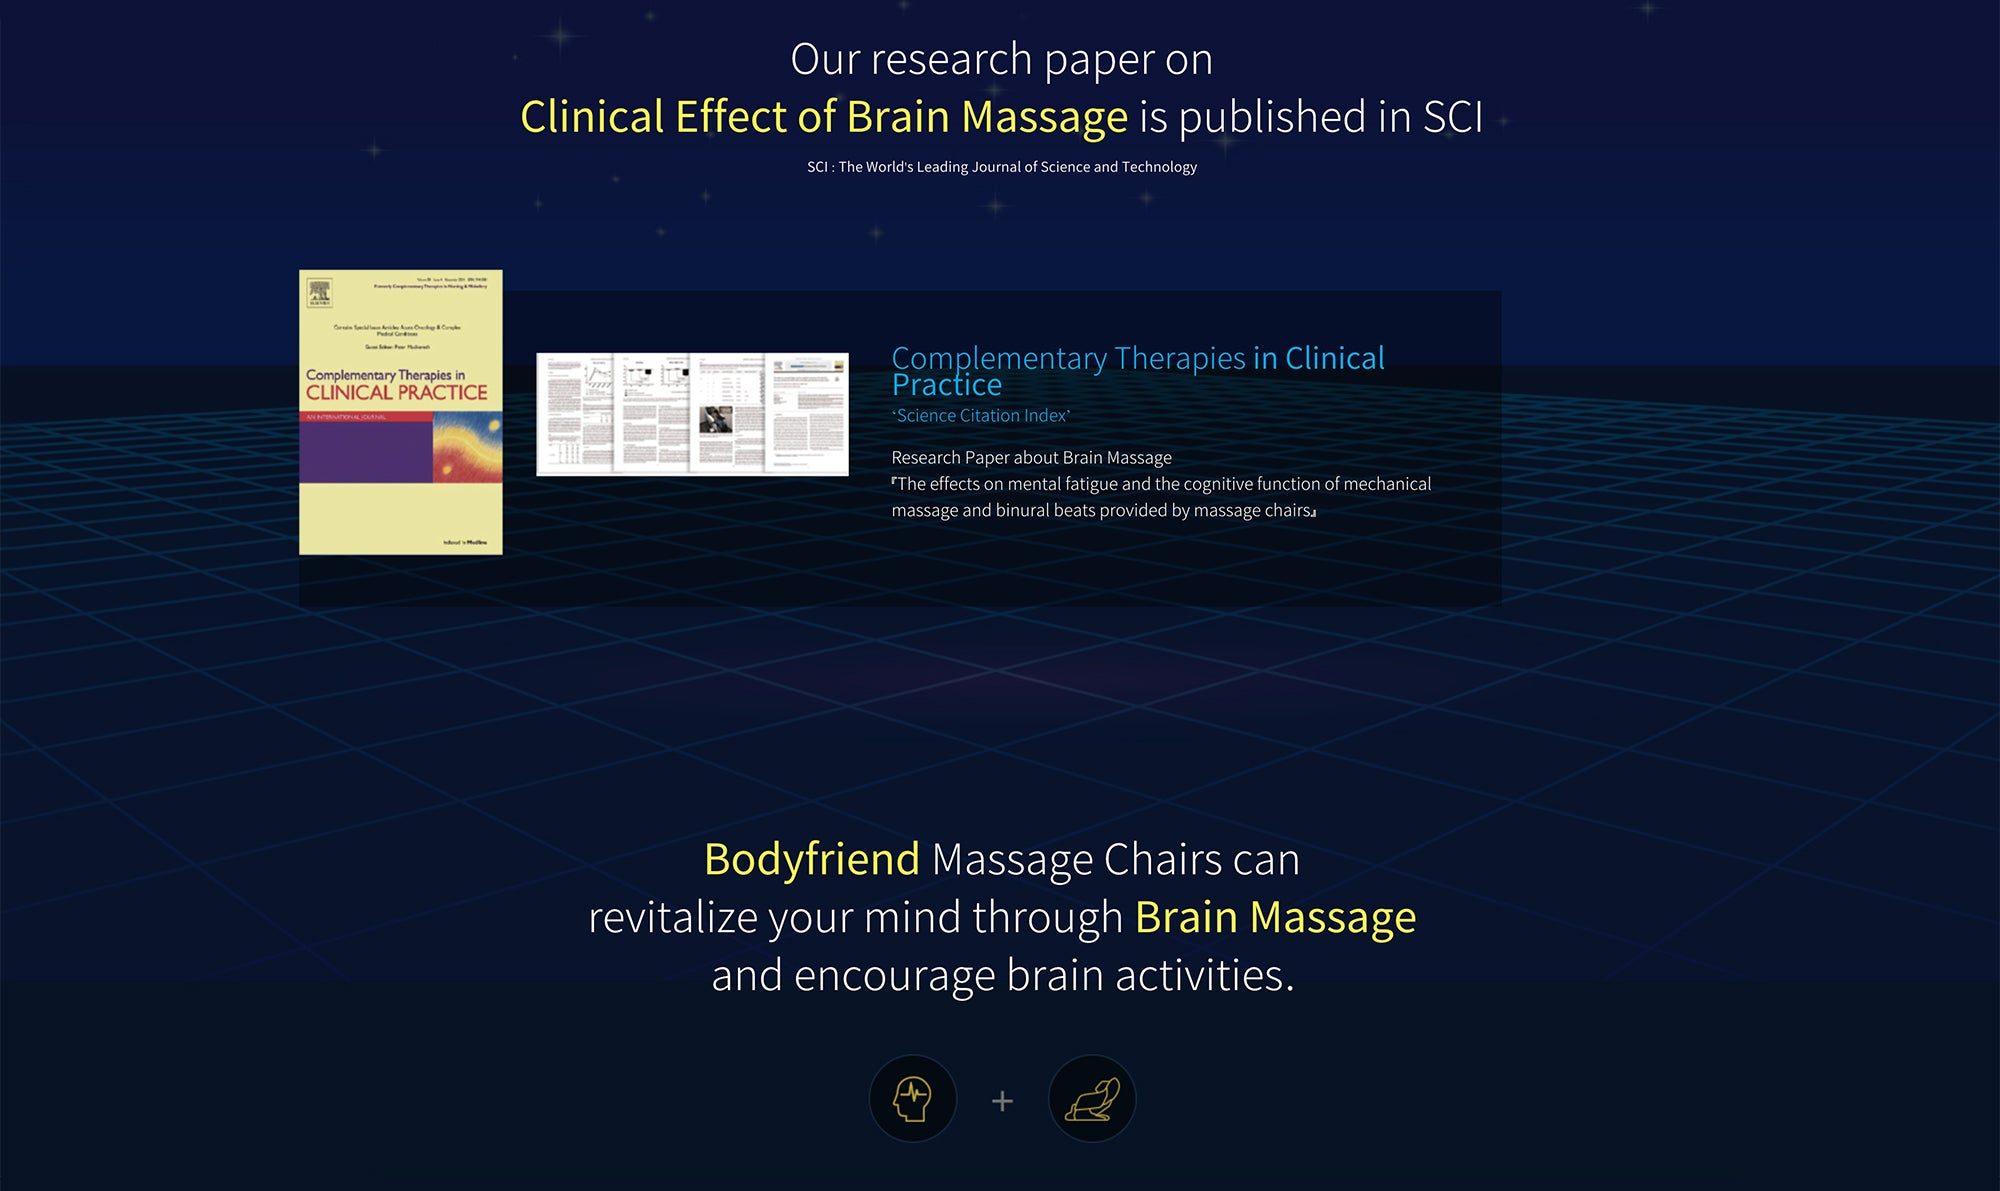 Our Research Paper on Clinical Effect Of Brain Massage Is Published In SCI